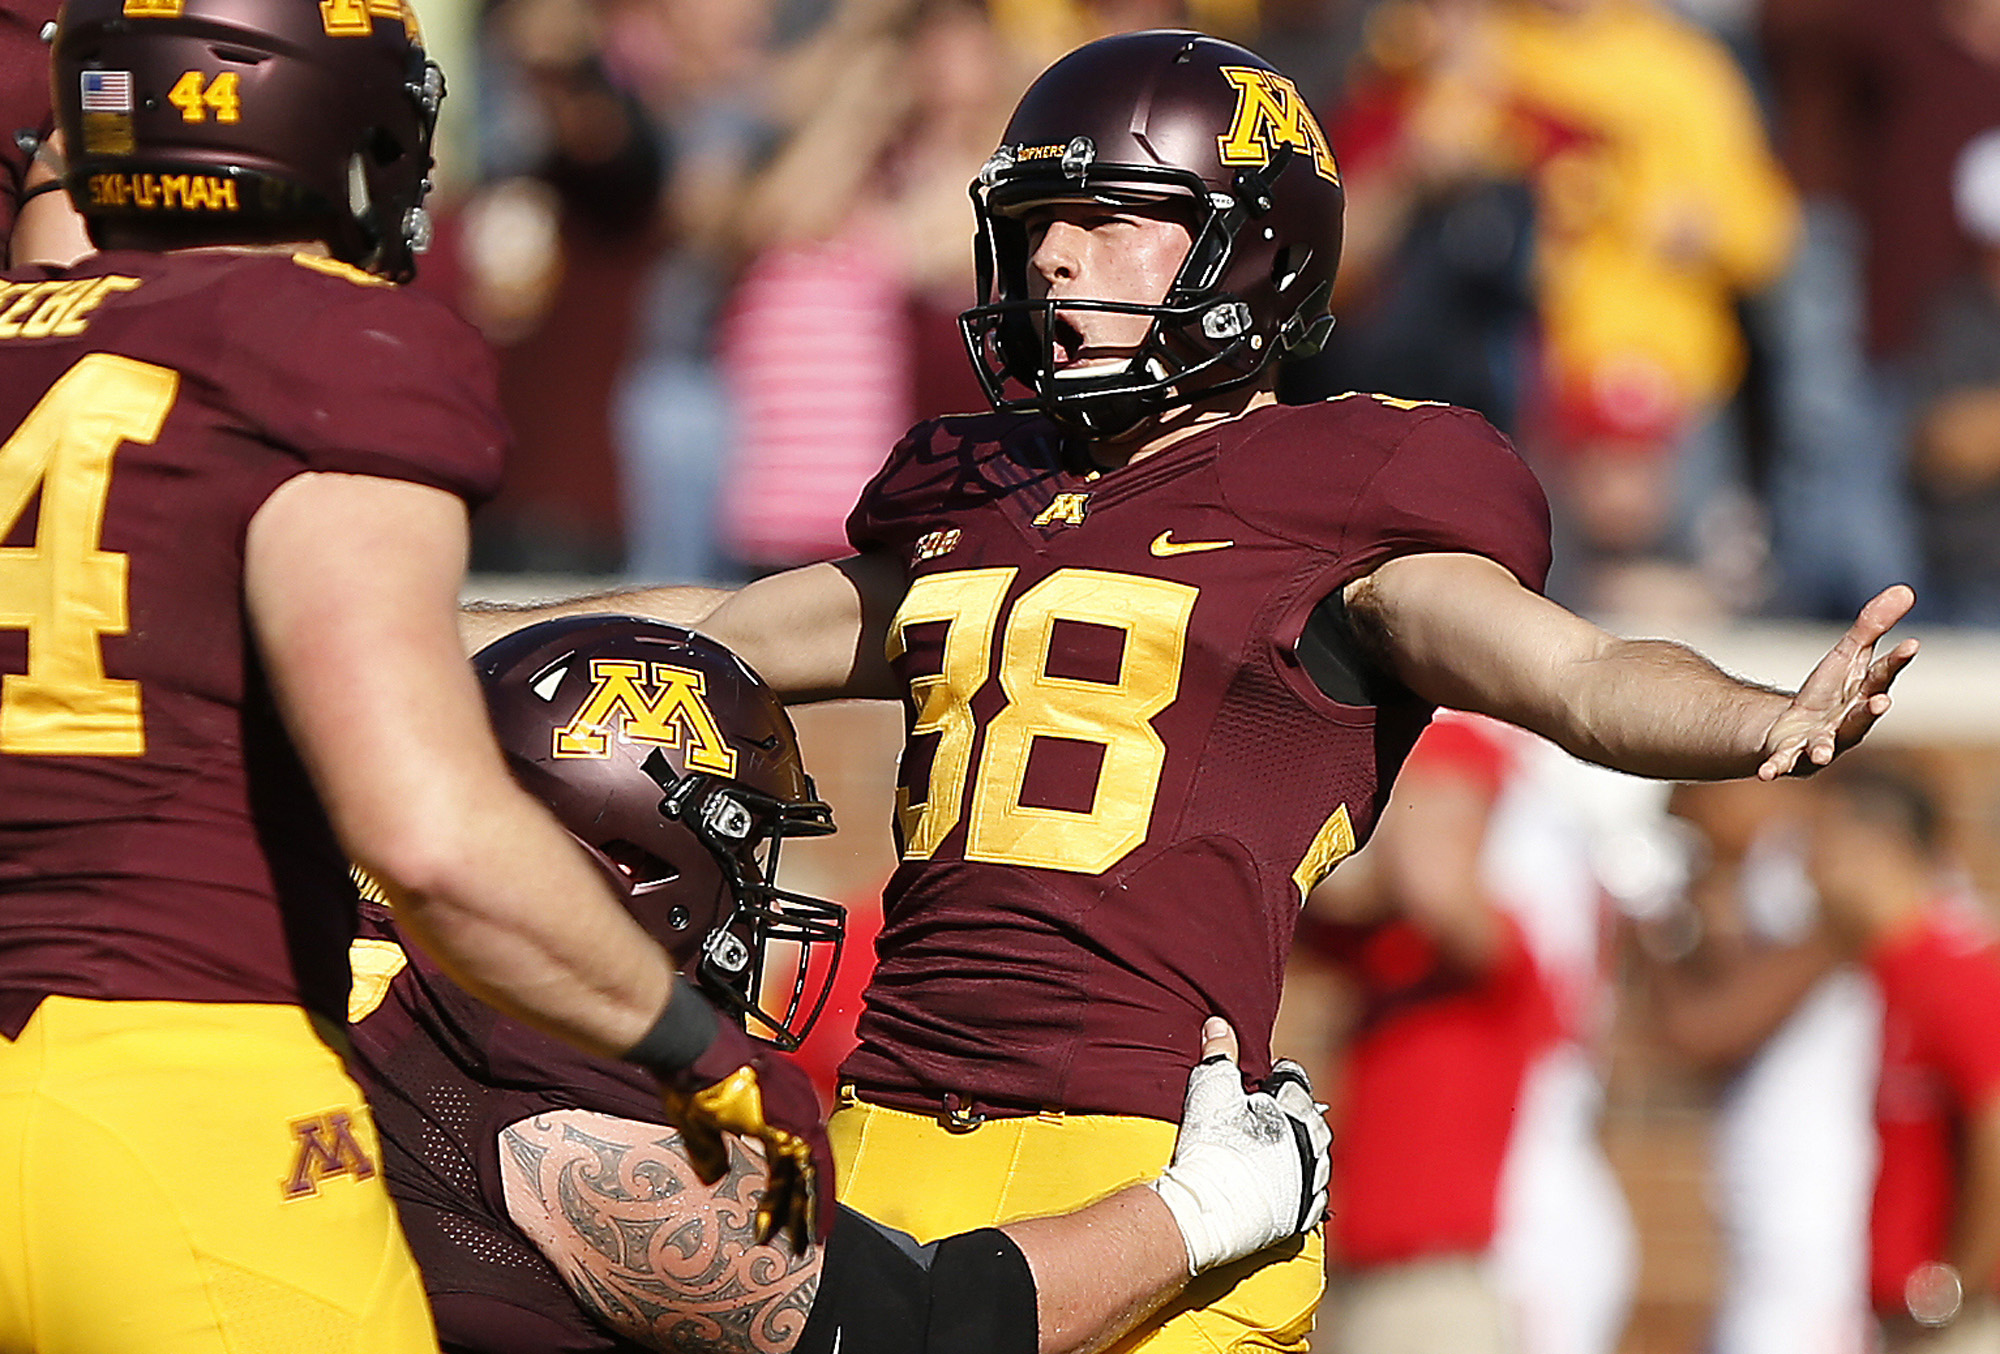 FILE - In this Oct. 22, 2016, file photo, Minnesota kicker Emmit Carpenter, right, celebrates after kicking the game winning field goal against Rutgers in an NCAA college football game in Minneapolis. Carpenter has made quite the debut this season, pickin